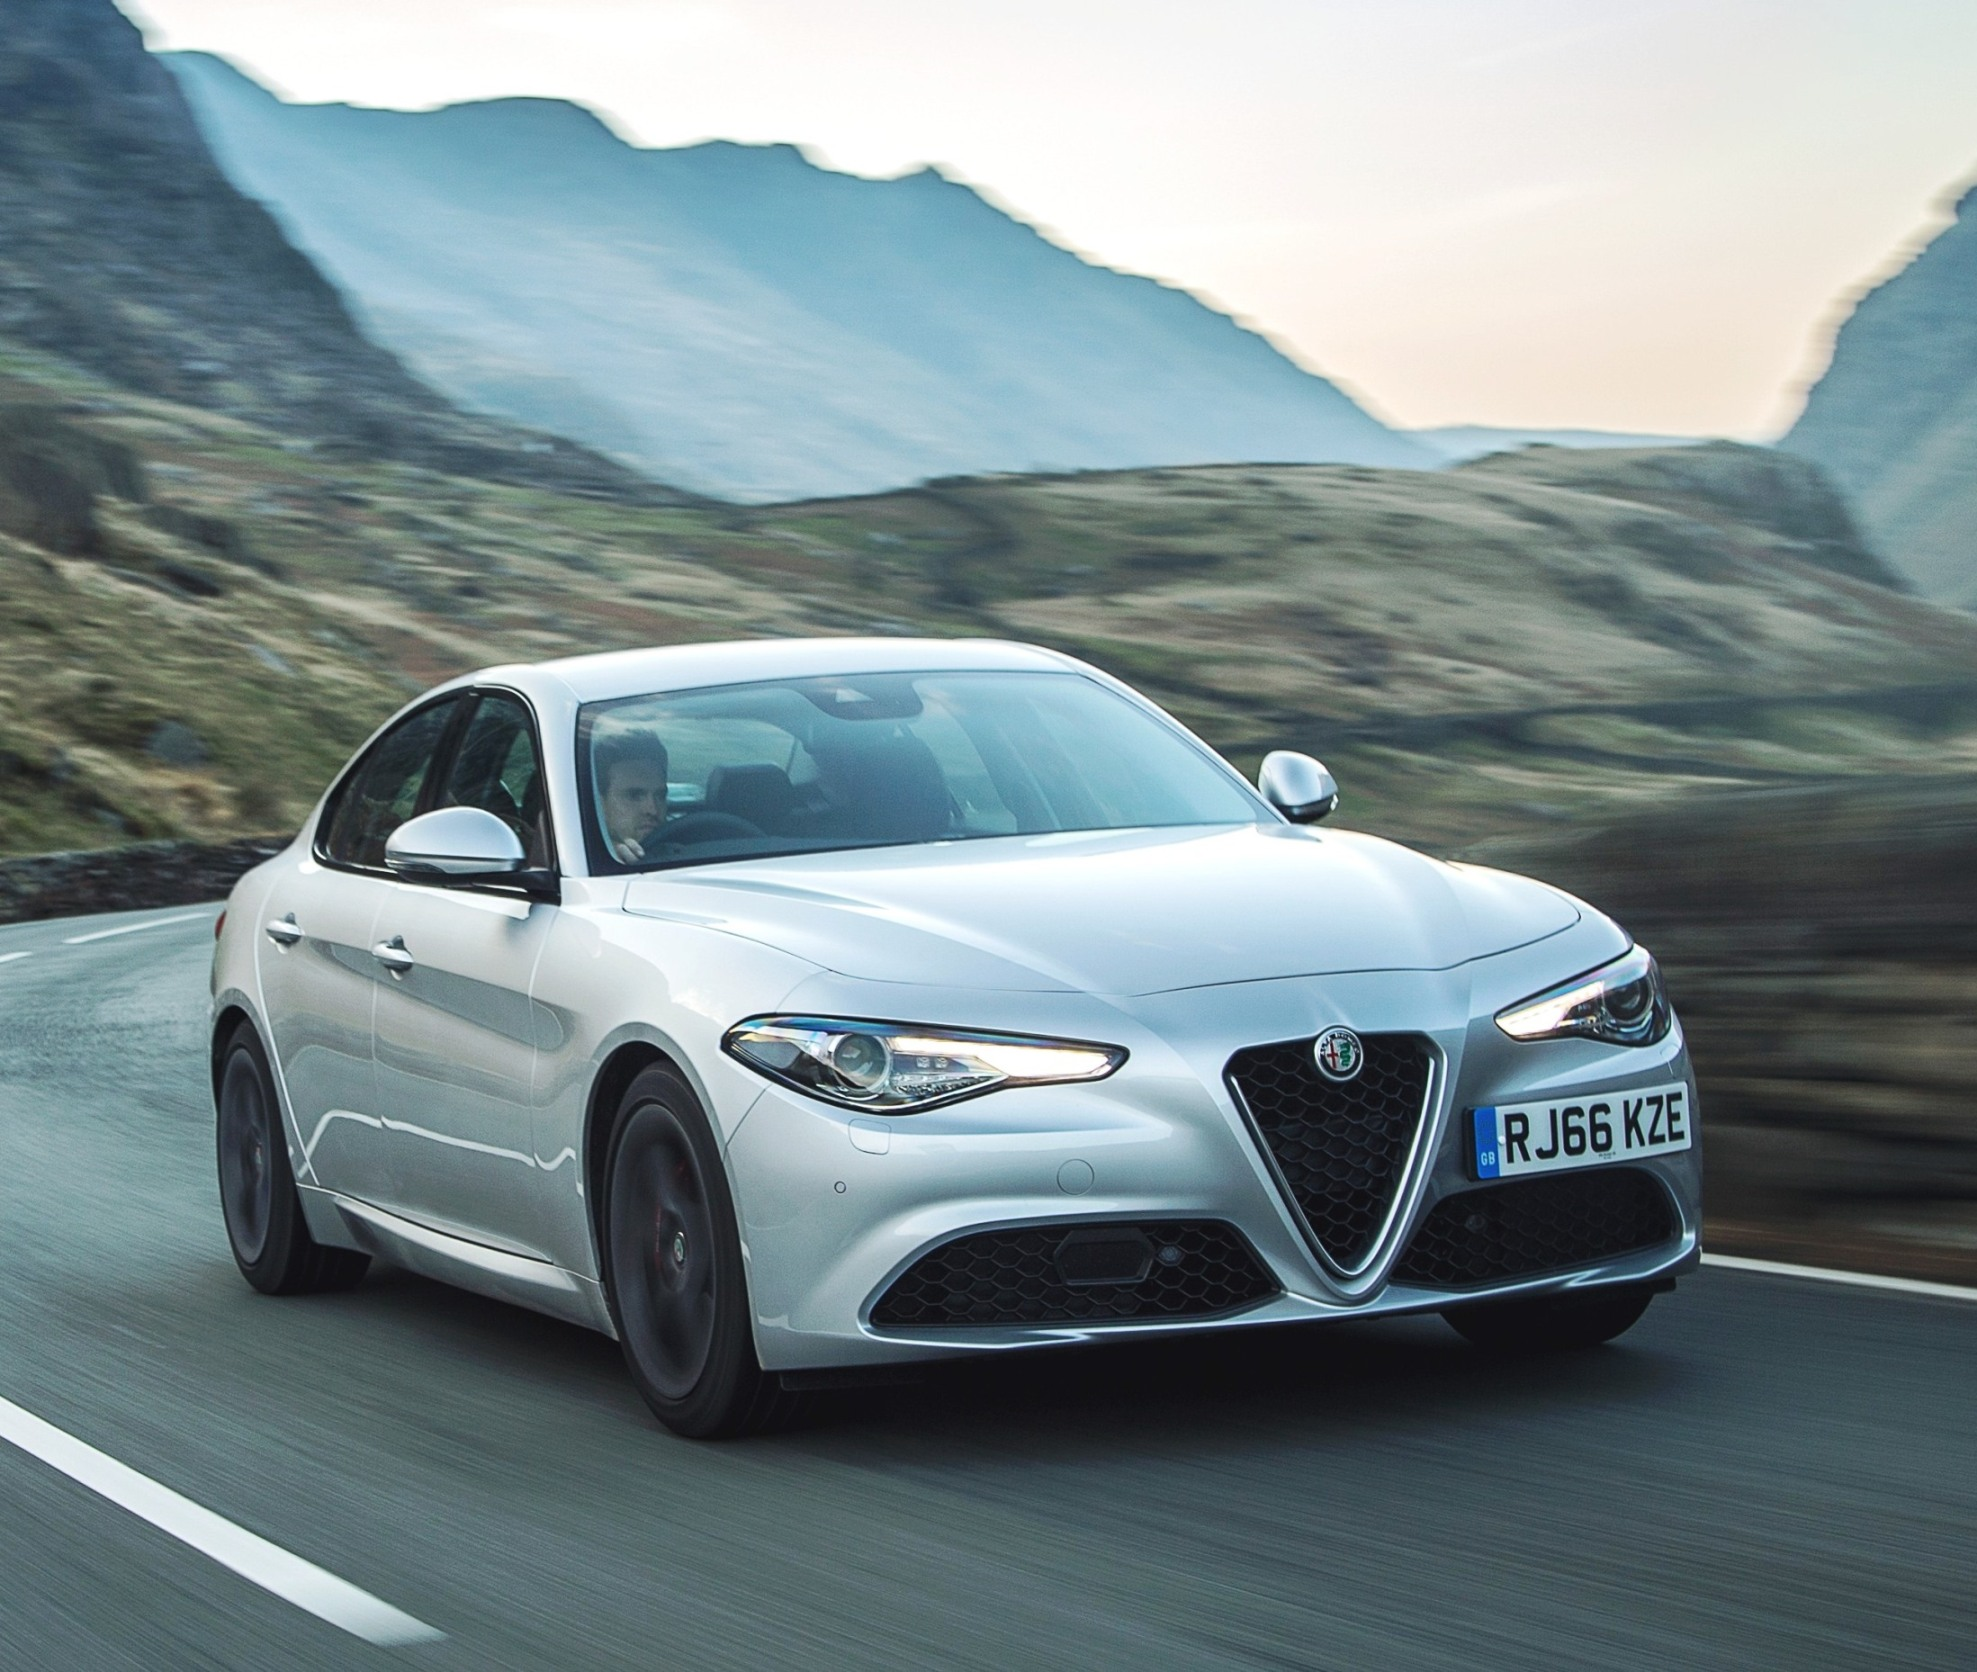 Alfa Romeo Giulia, Latest Rear Wheel Drive Model